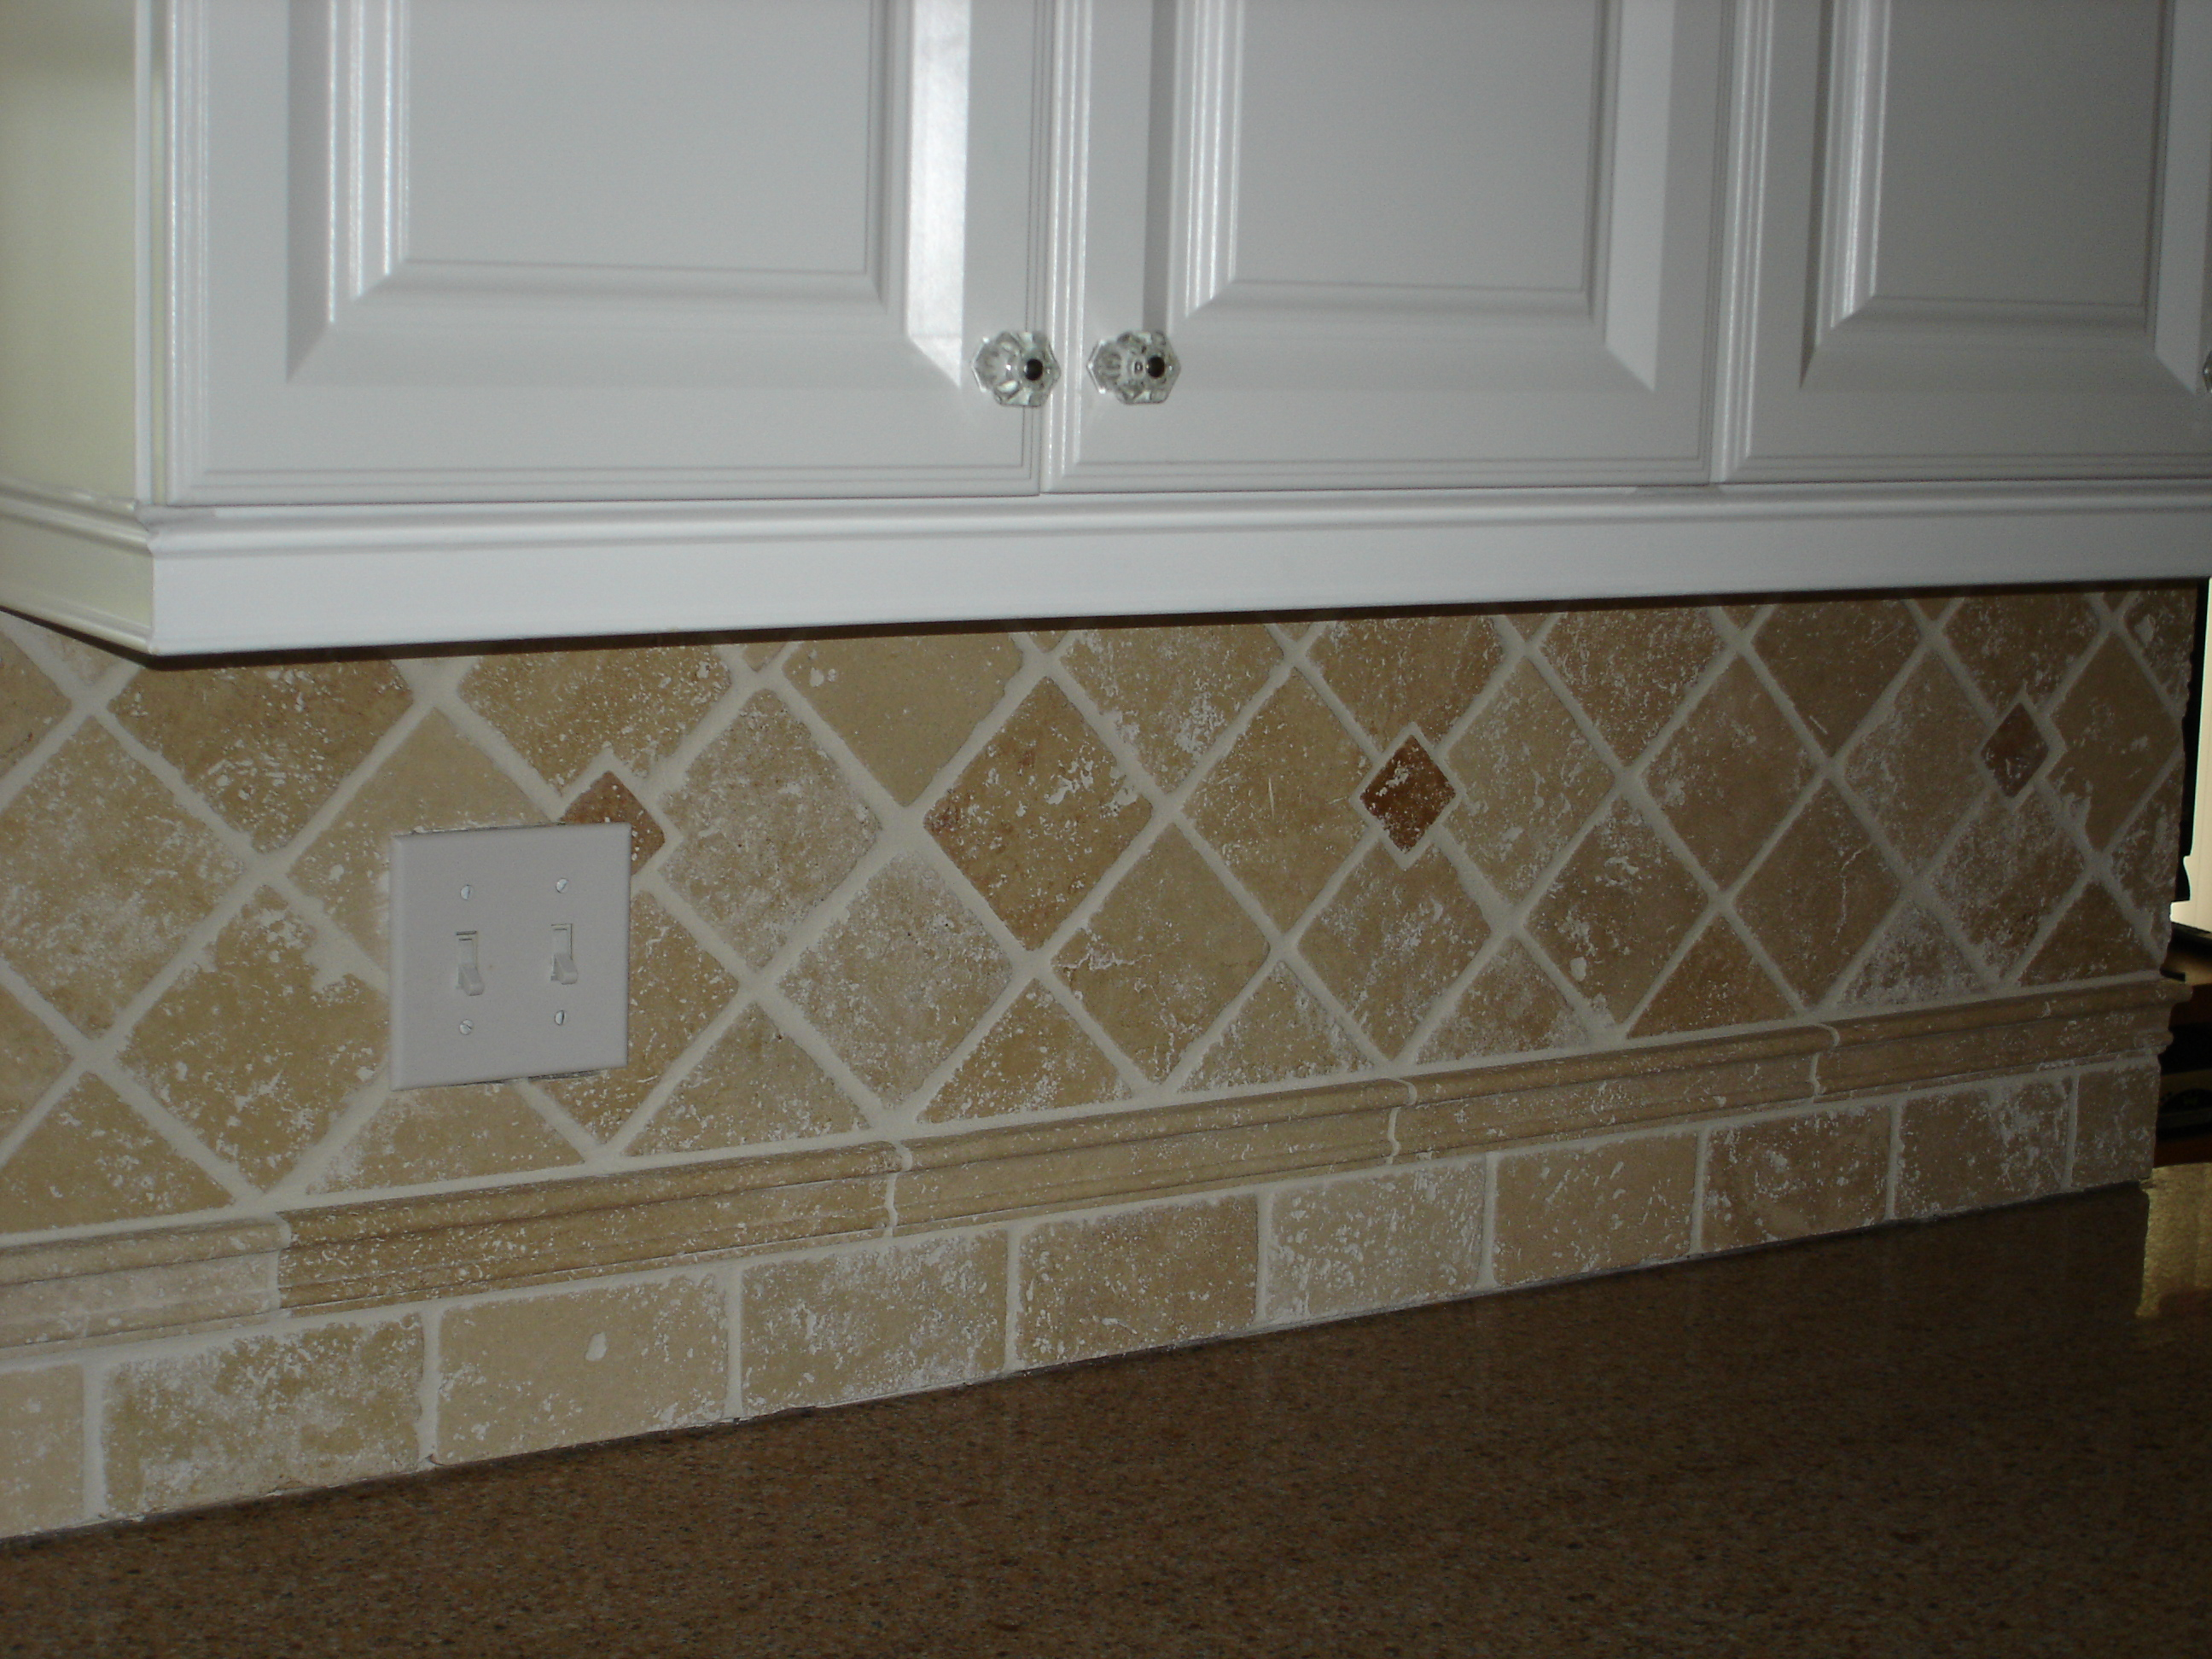 Tile Mural Kitchen Backsplash Designs